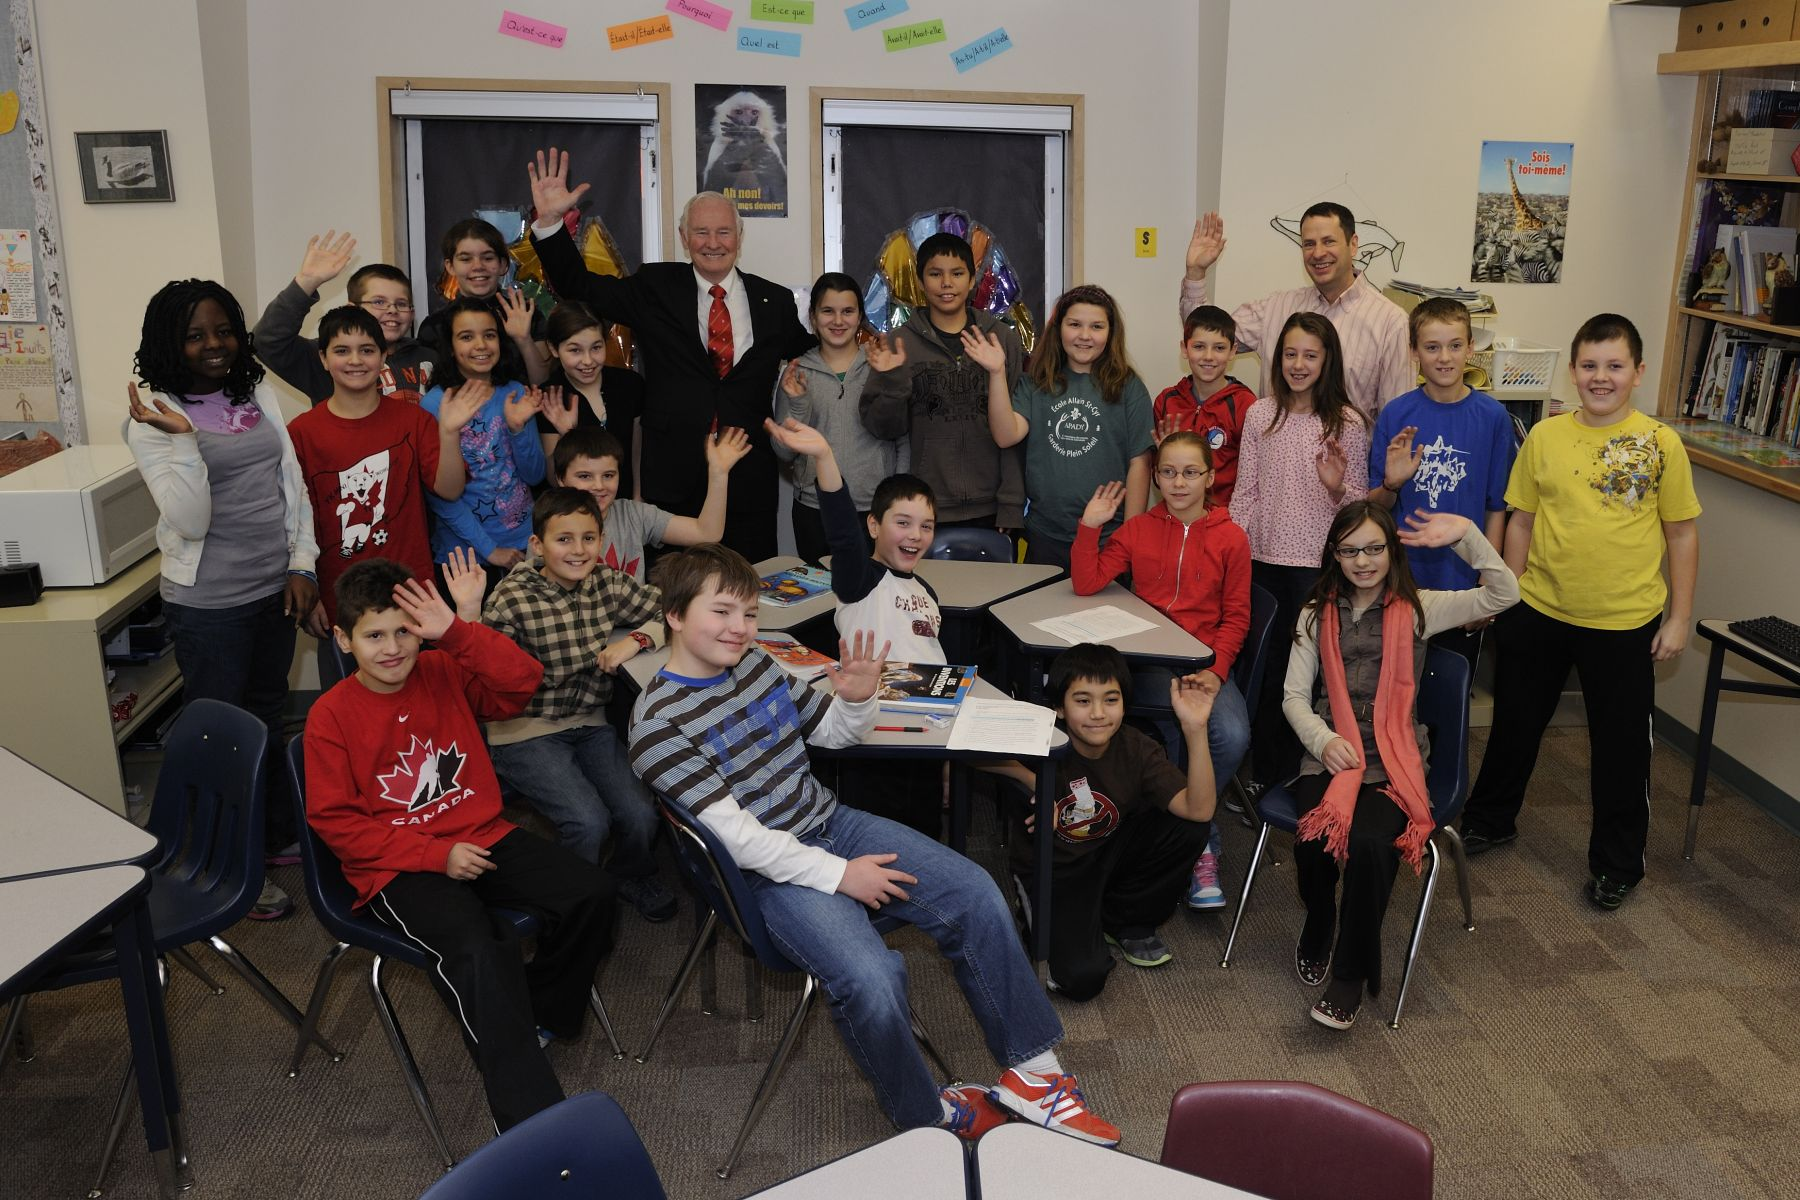 Their Excellencies then visited a classroom at École Allain St-Cyr and answered questions from the students. The school provides French education to some 130 students in Yellowknife, from kindergarten to Grade 12, and also serves as a cultural community centre.